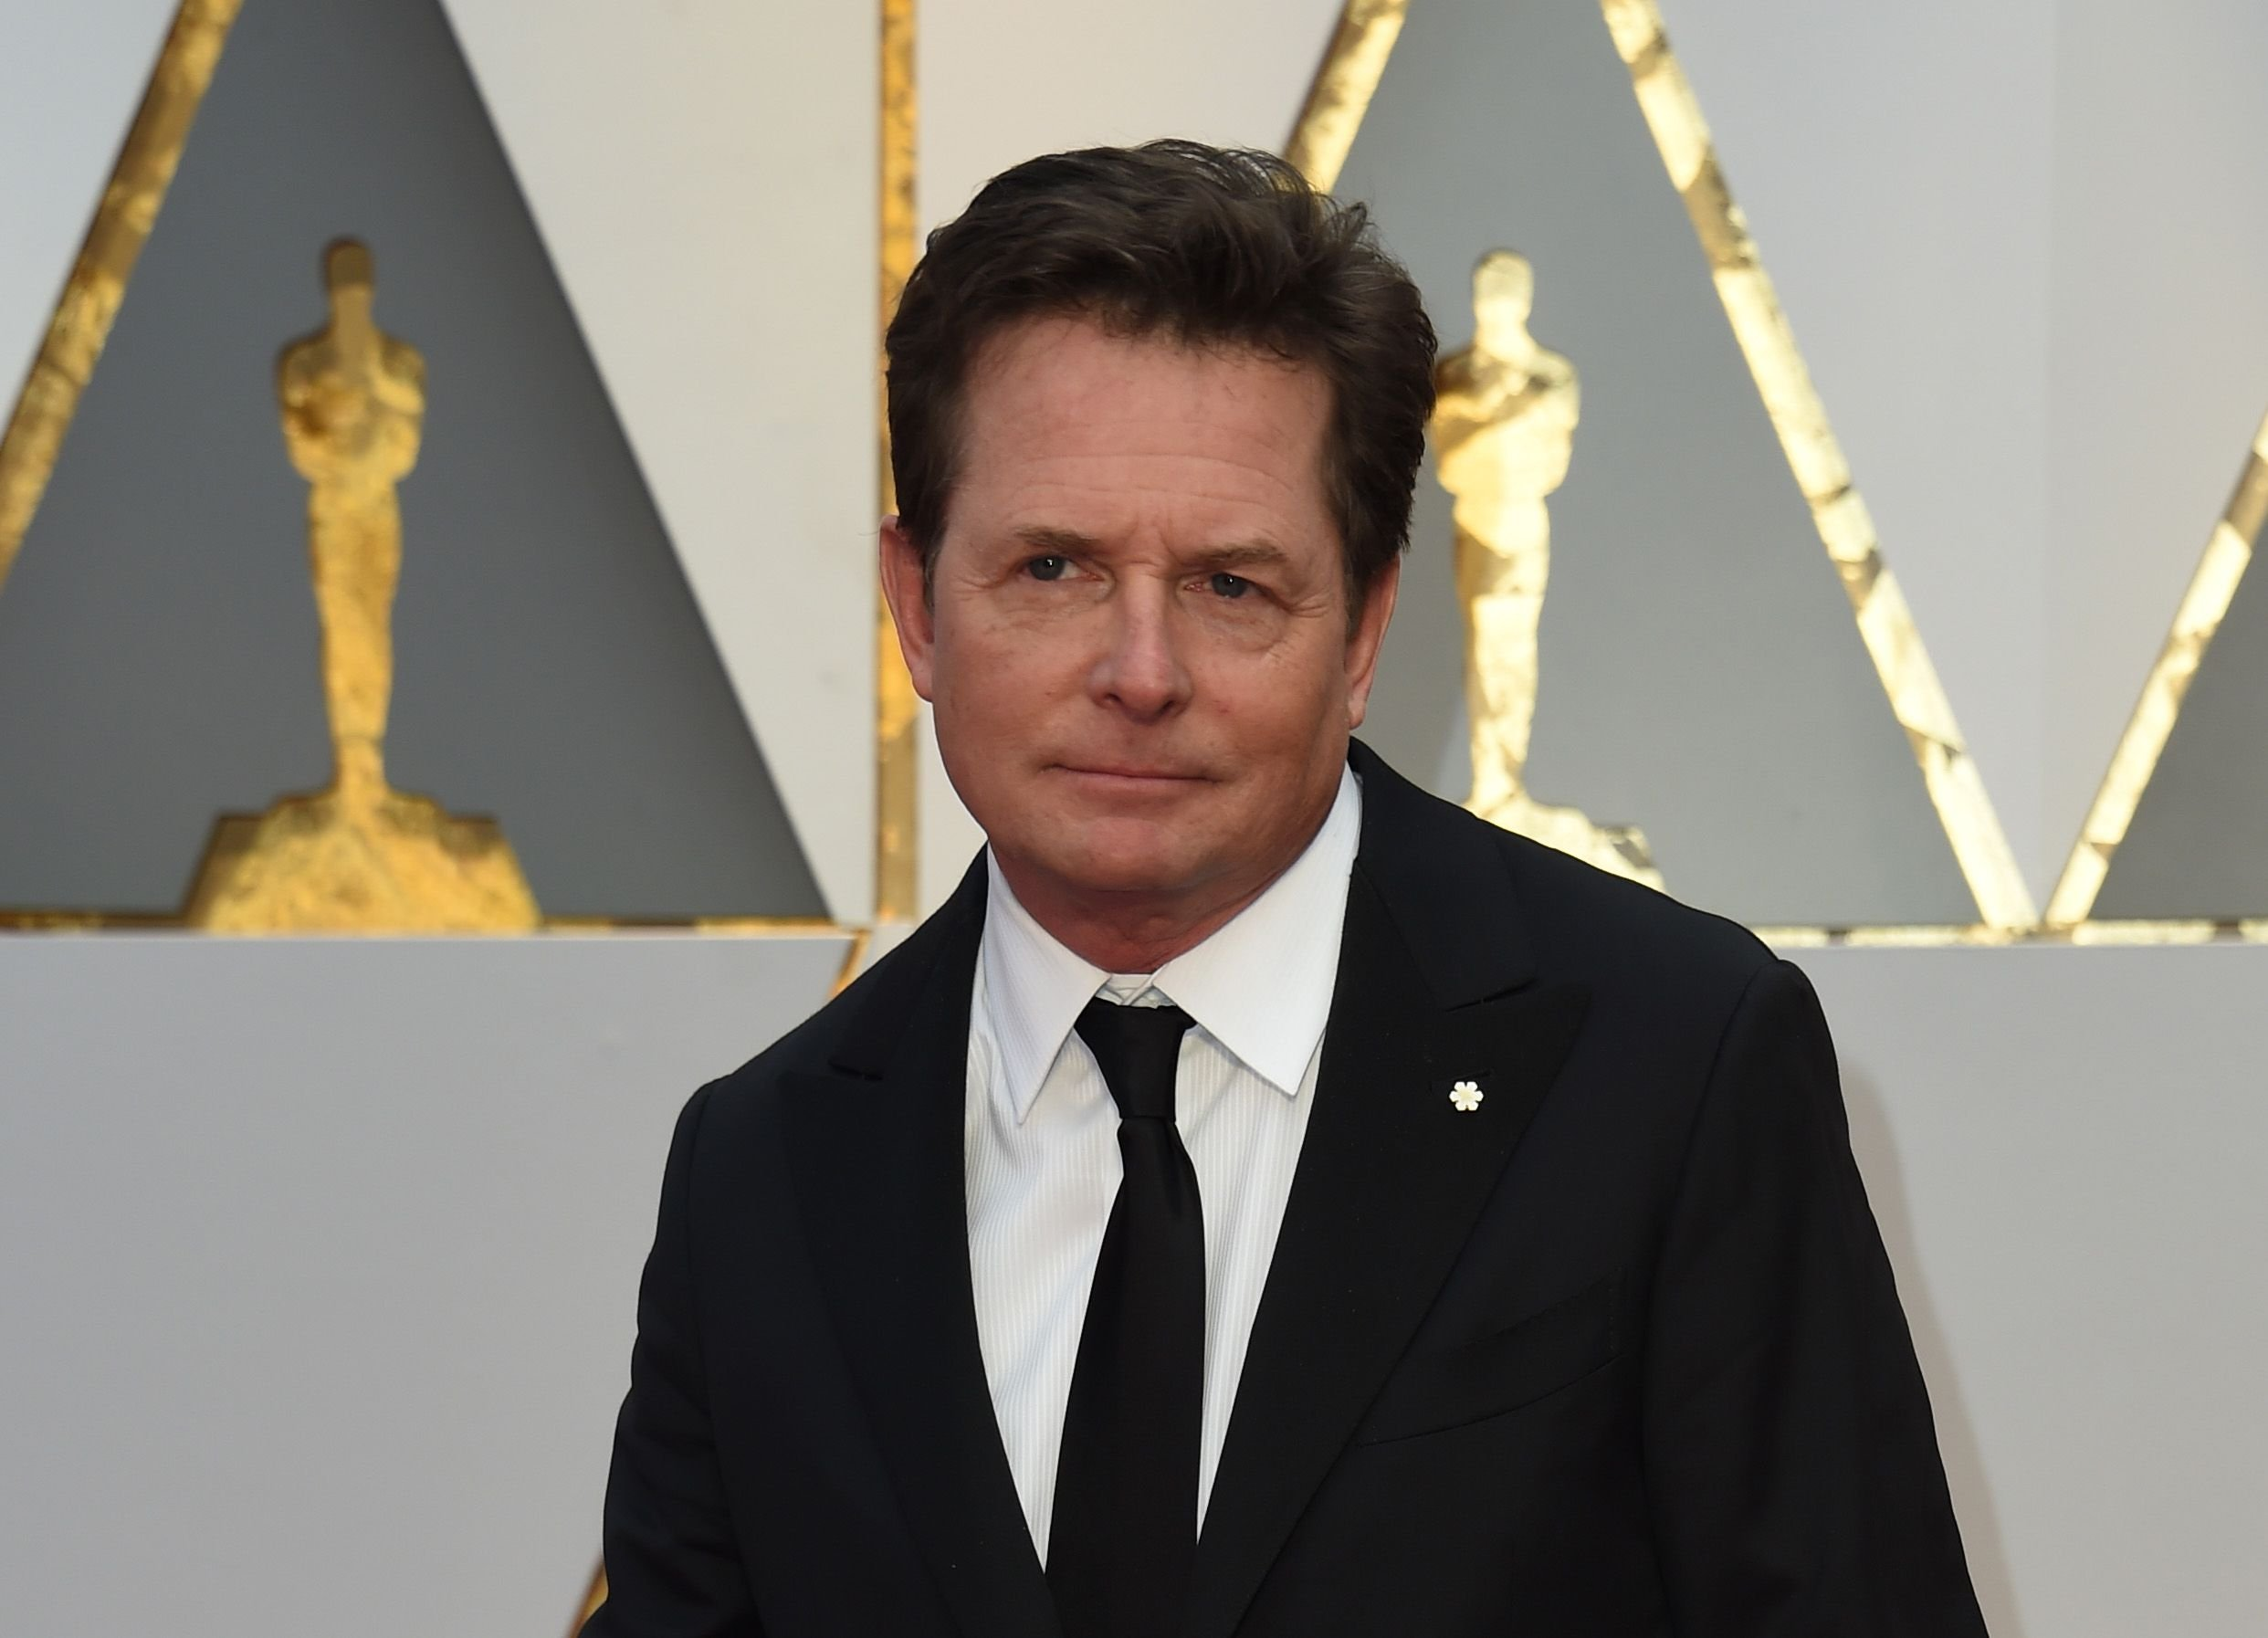 Michael J. Fox arrives on the red carpet for the 89th Oscars on February 26, 2017 in Hollywood, California. | Photo: Getty Images